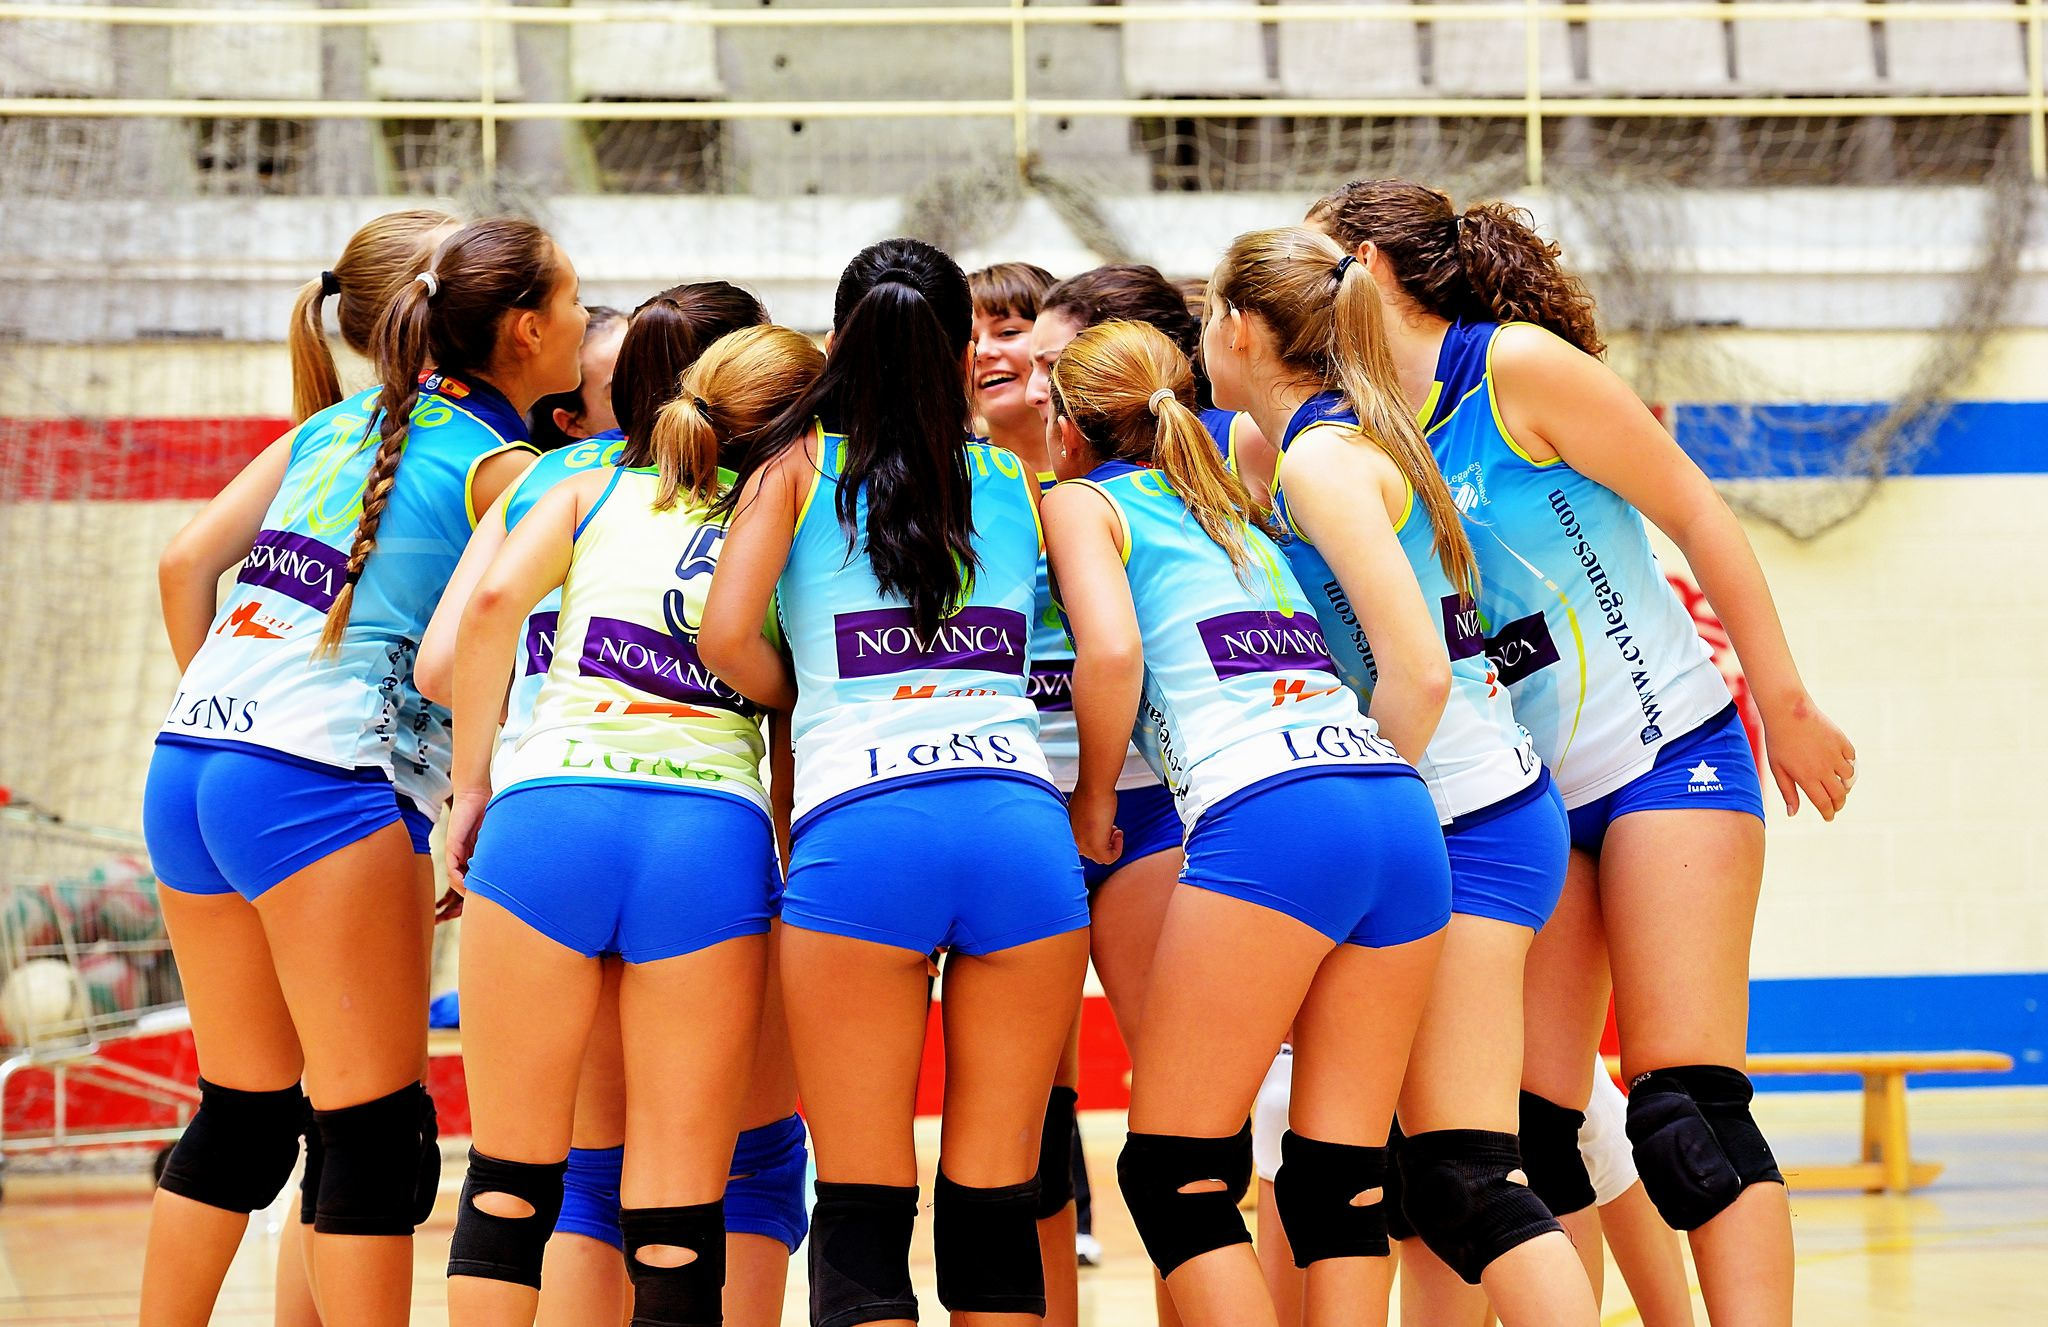 Pin By Landrensremmlife On Spor In 2020 Women Volleyball Volleyball Players Volleyball